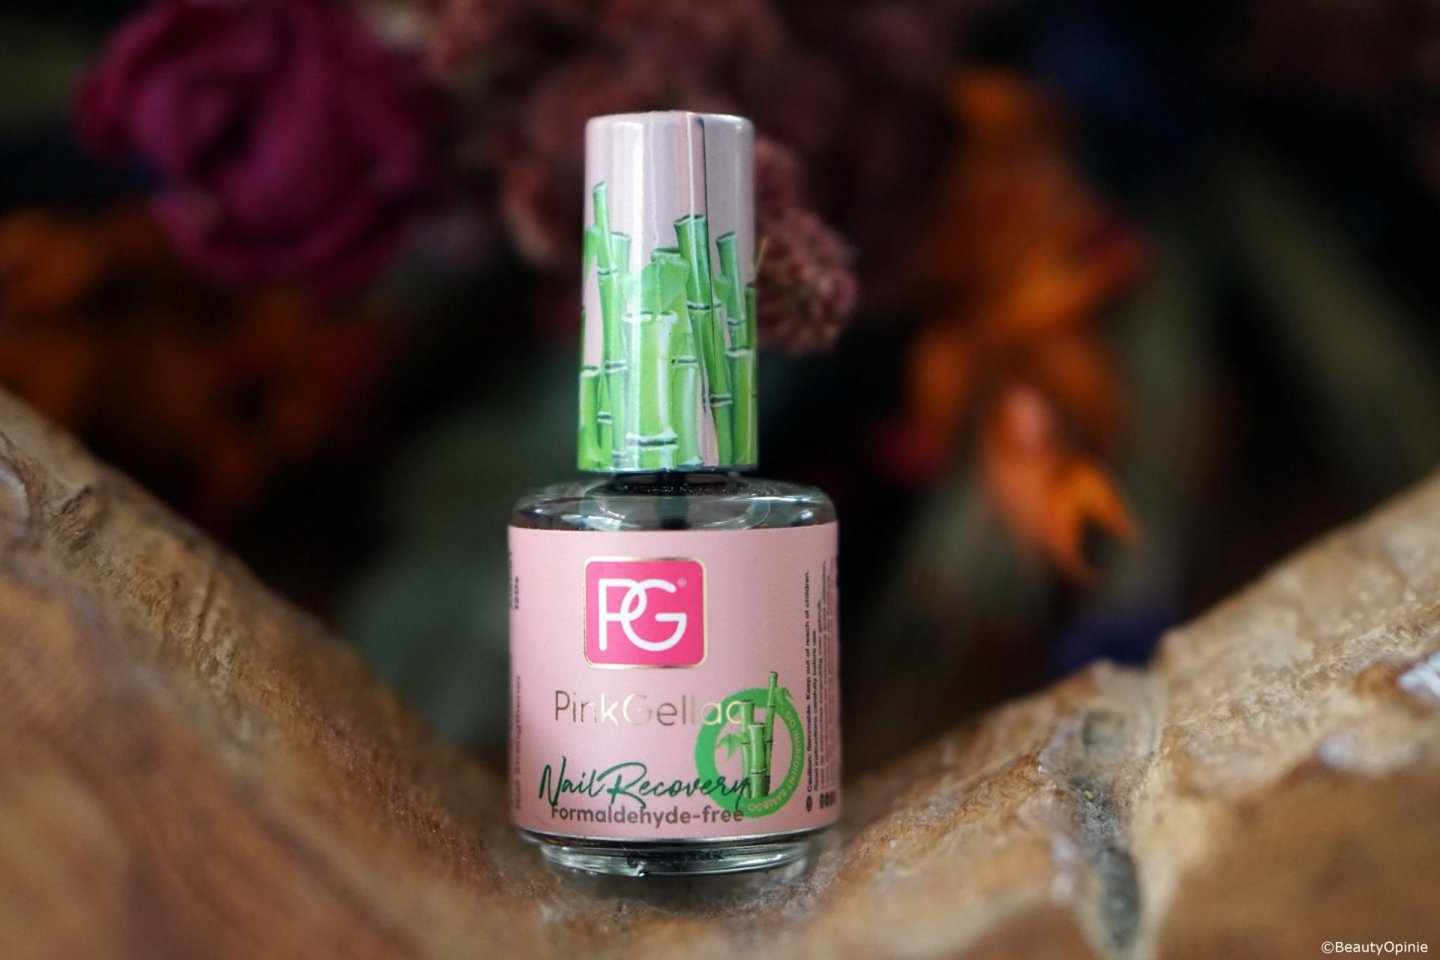 Pink Gellac Nail Recovery review